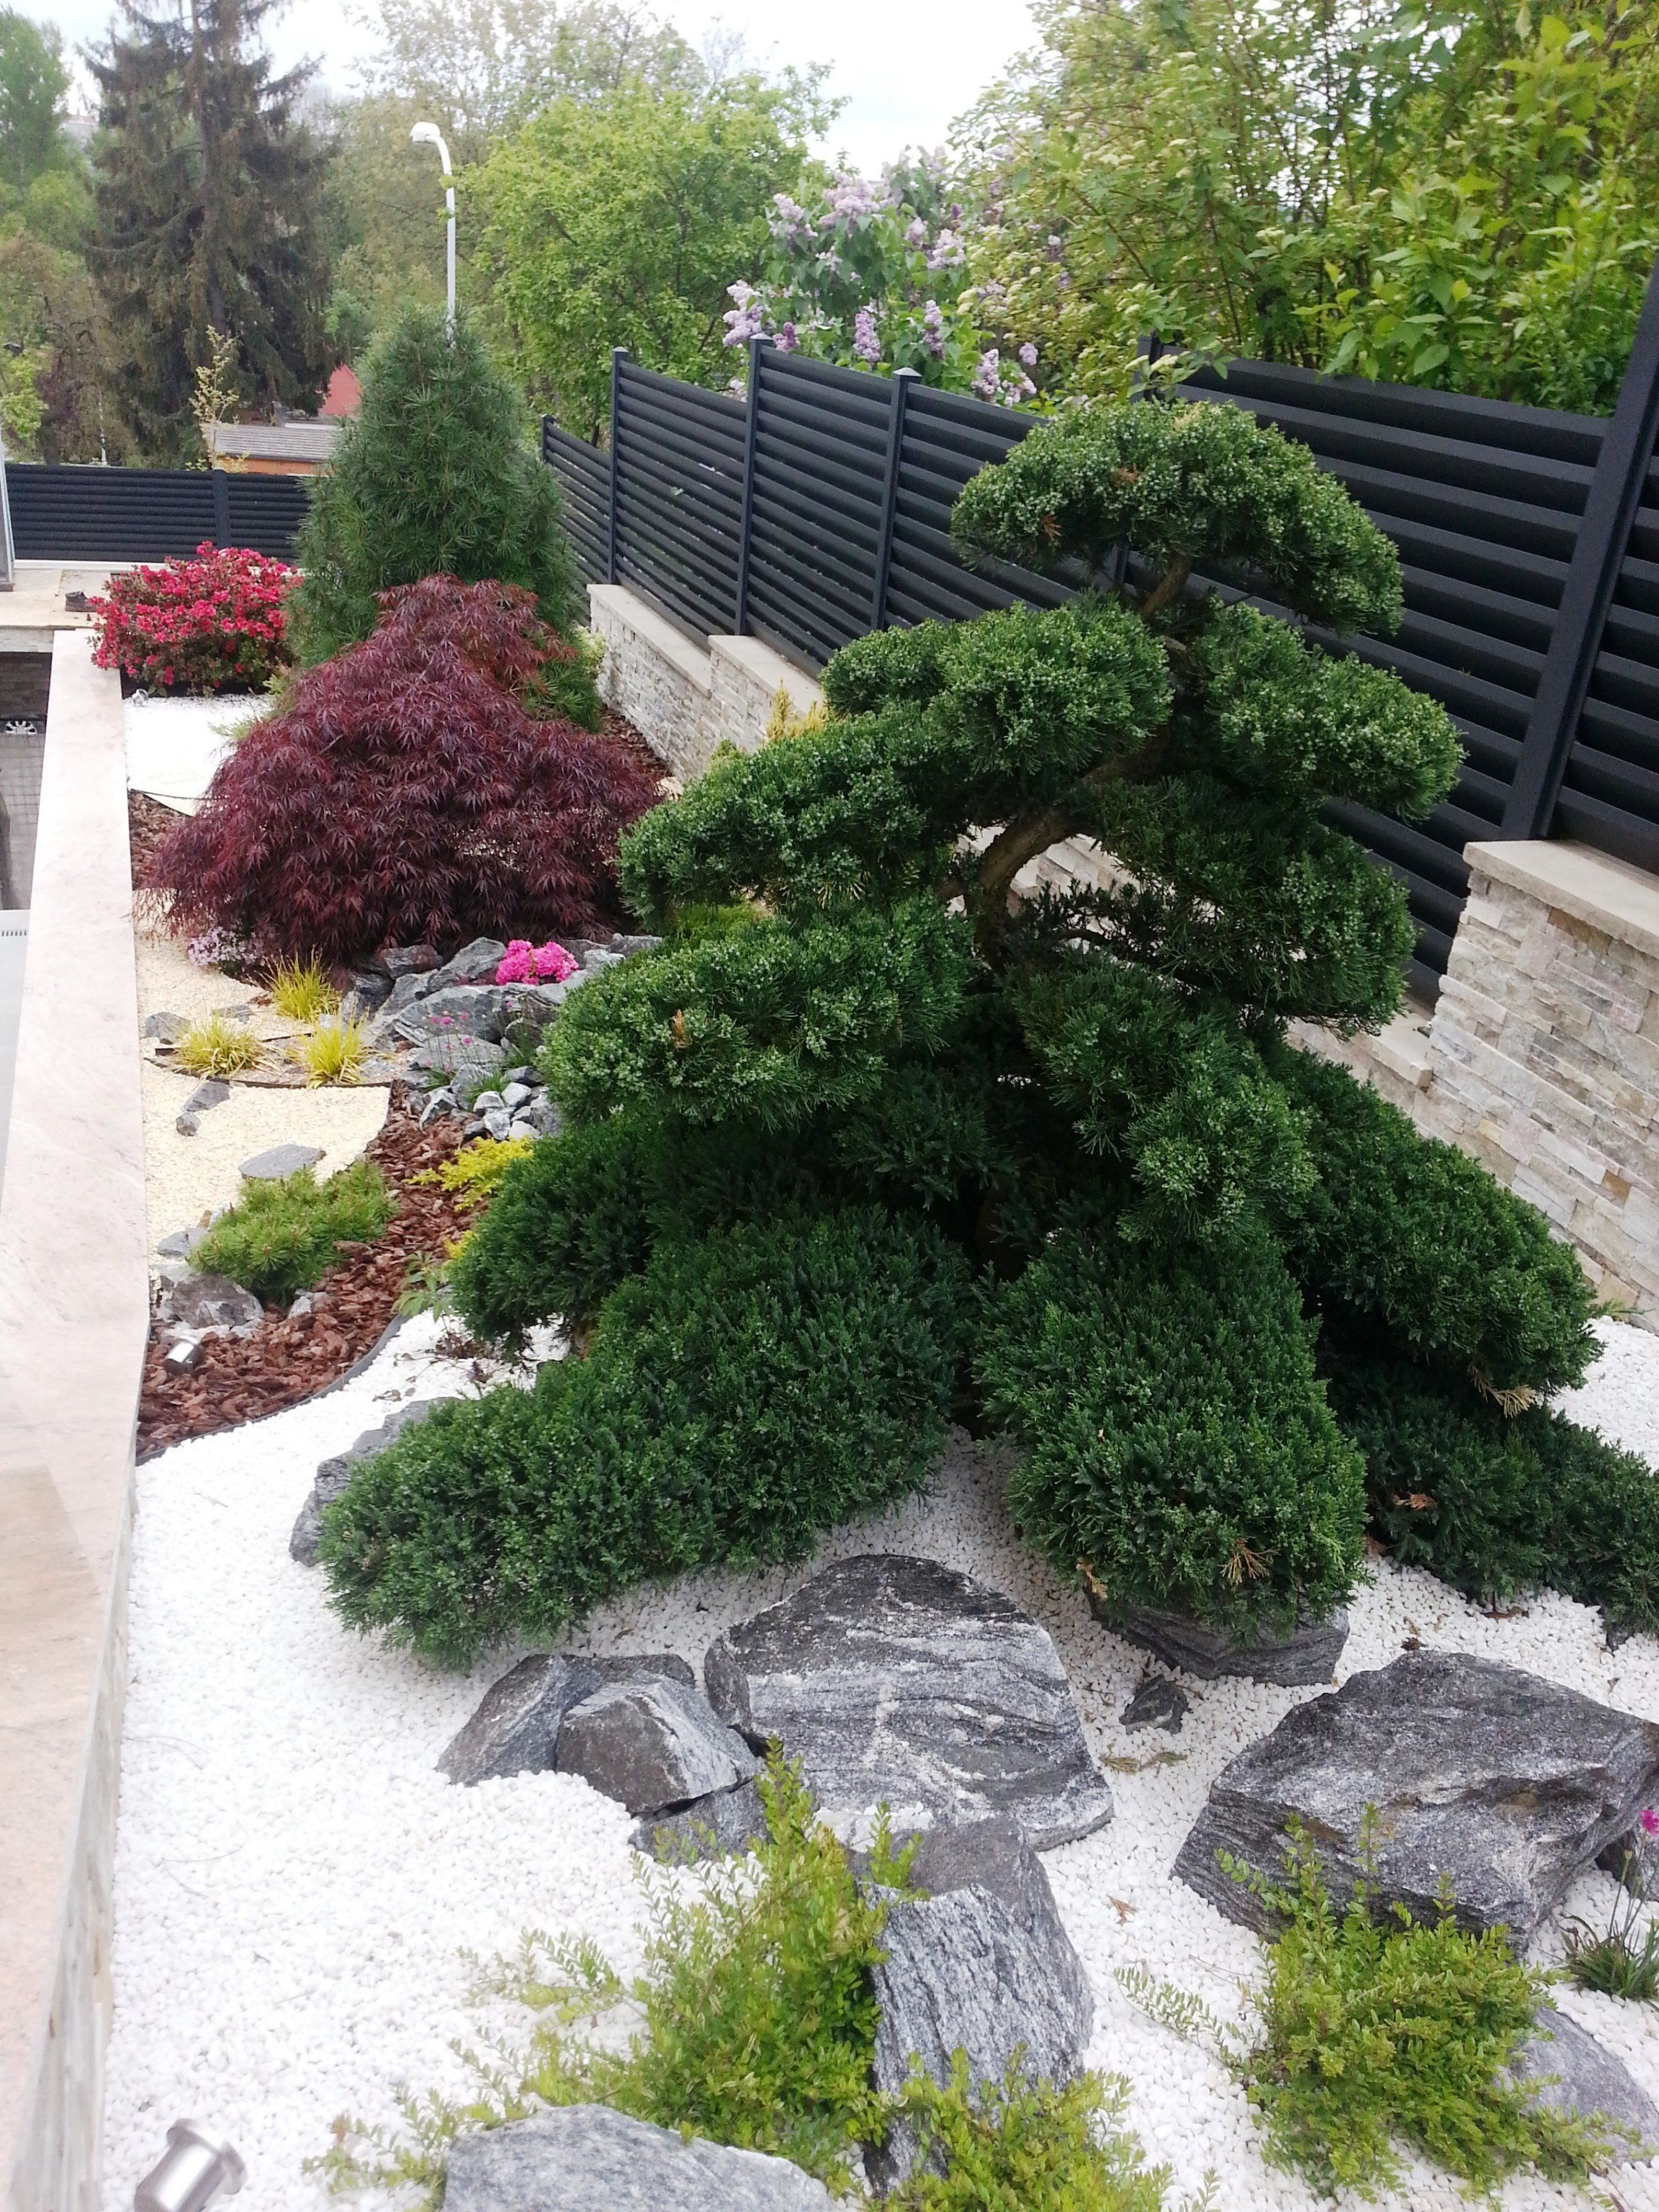 Japanese Garden Theme For A Getaway In Your Own Backyard Ogrody